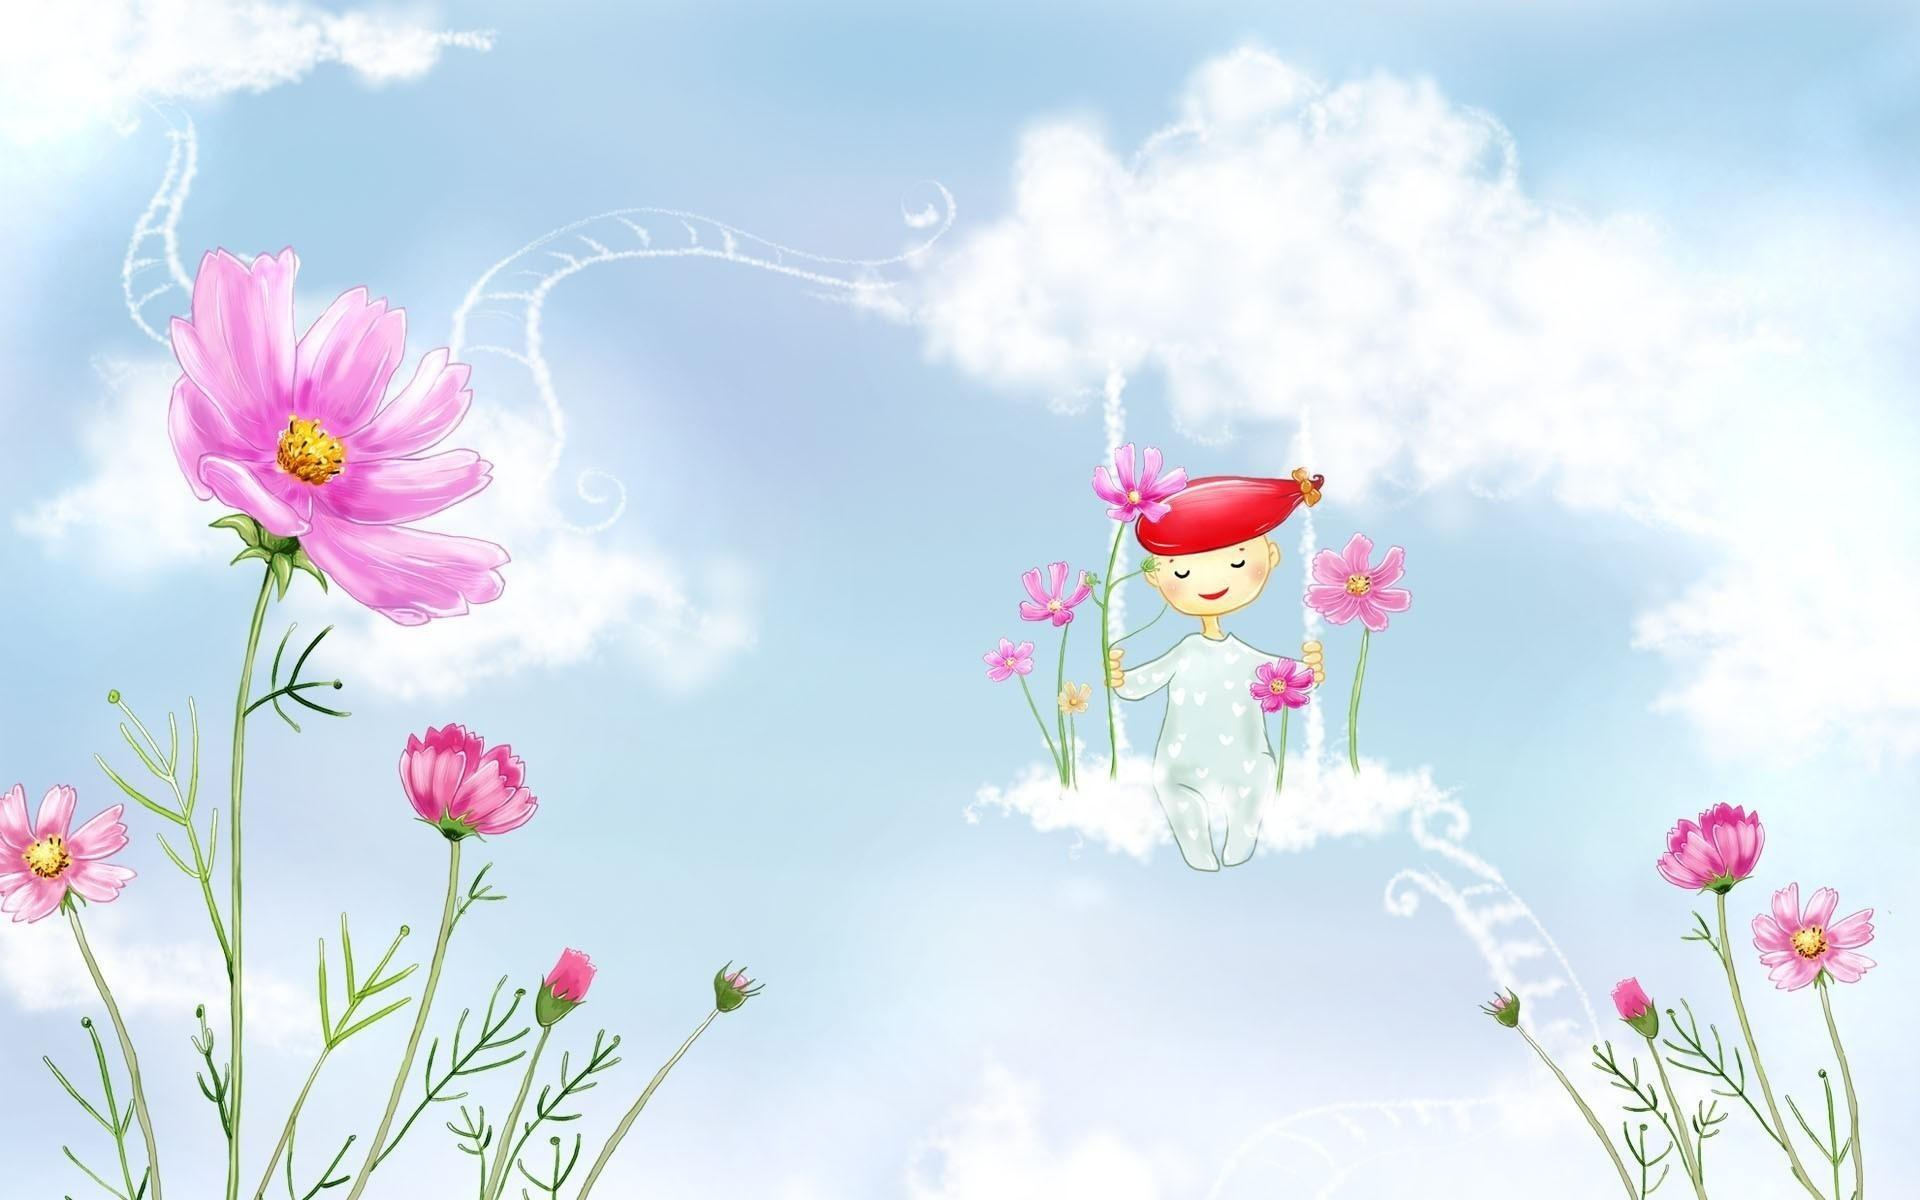 Spring Artistic wallpapers HD quality